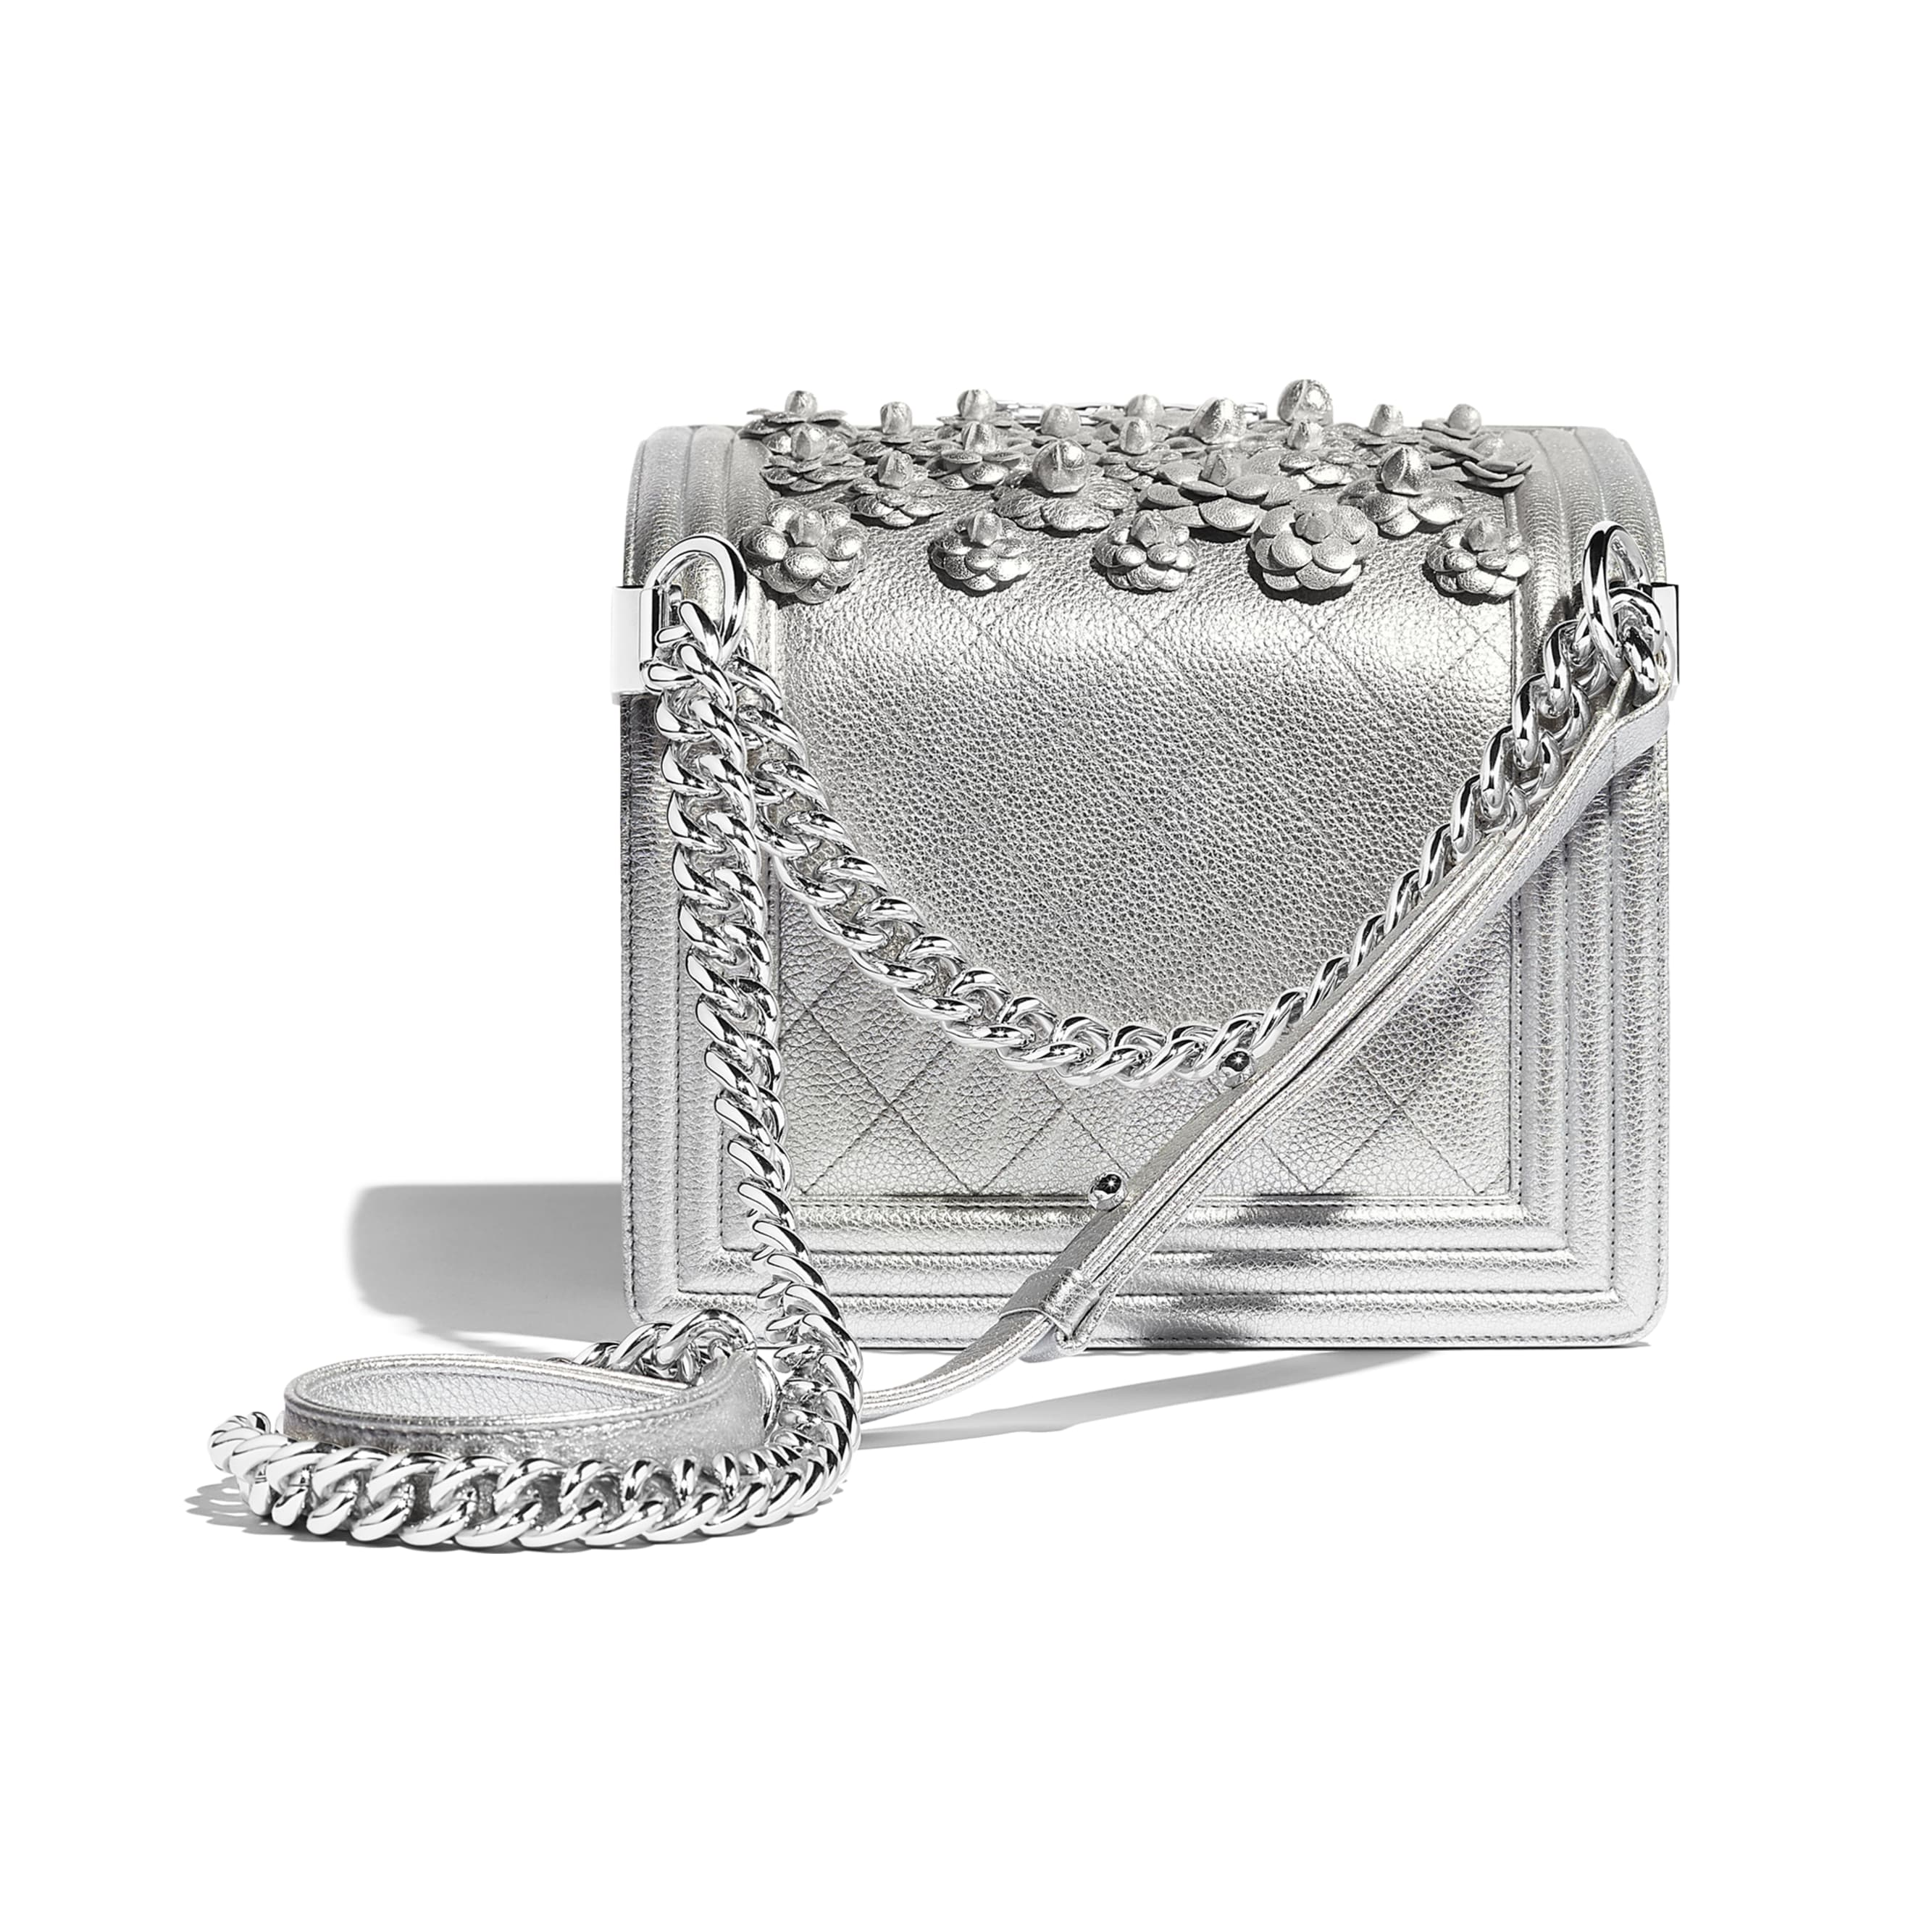 Small BOY CHANEL Handbag - Silver - Embroidered Metallic Grained Calfskin & Silver-Tone Metal - Other view - see standard sized version